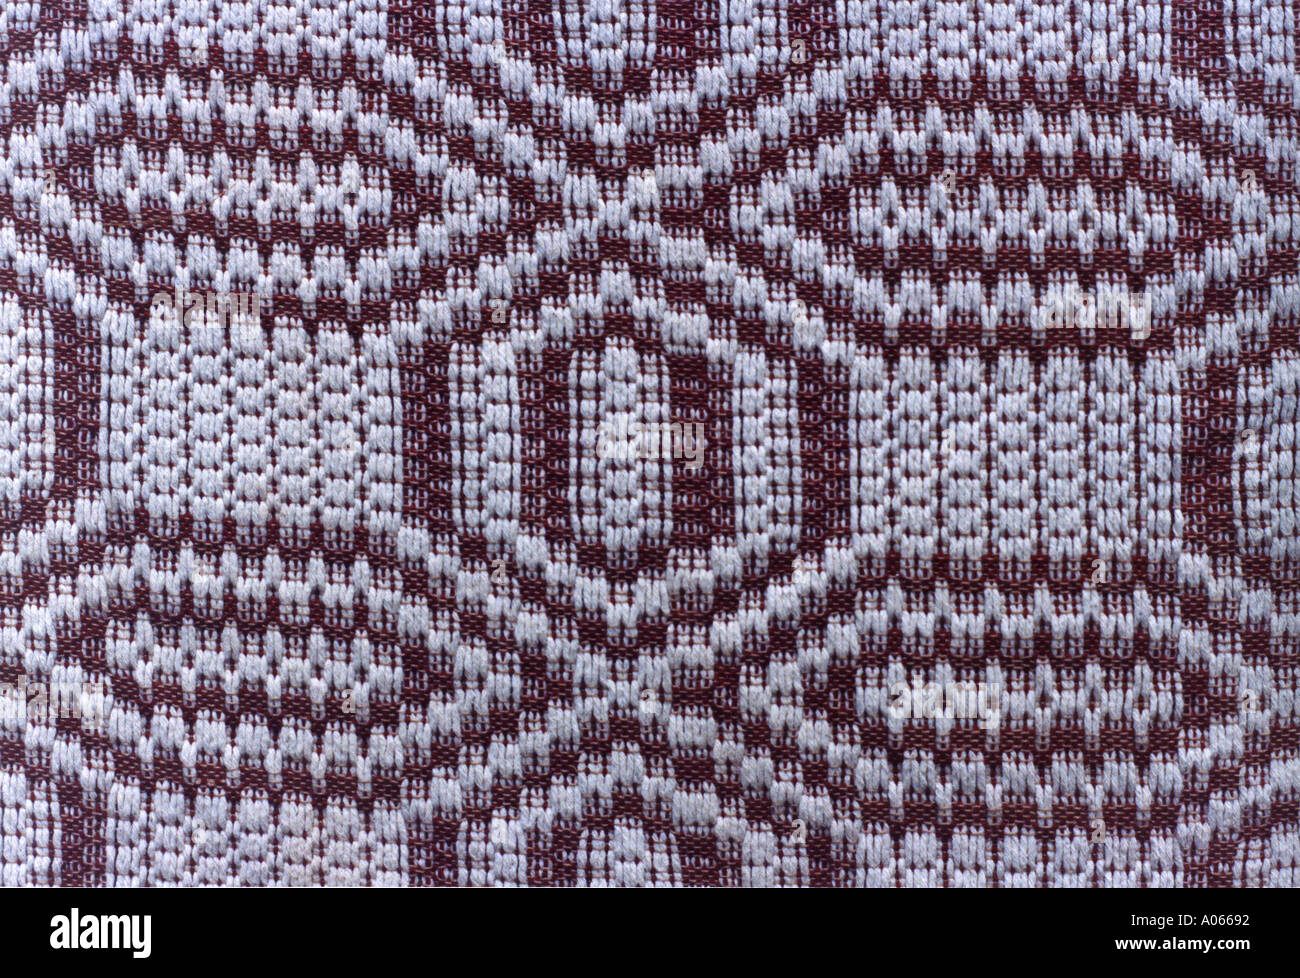 Hand Made Tapestry - Stock Image